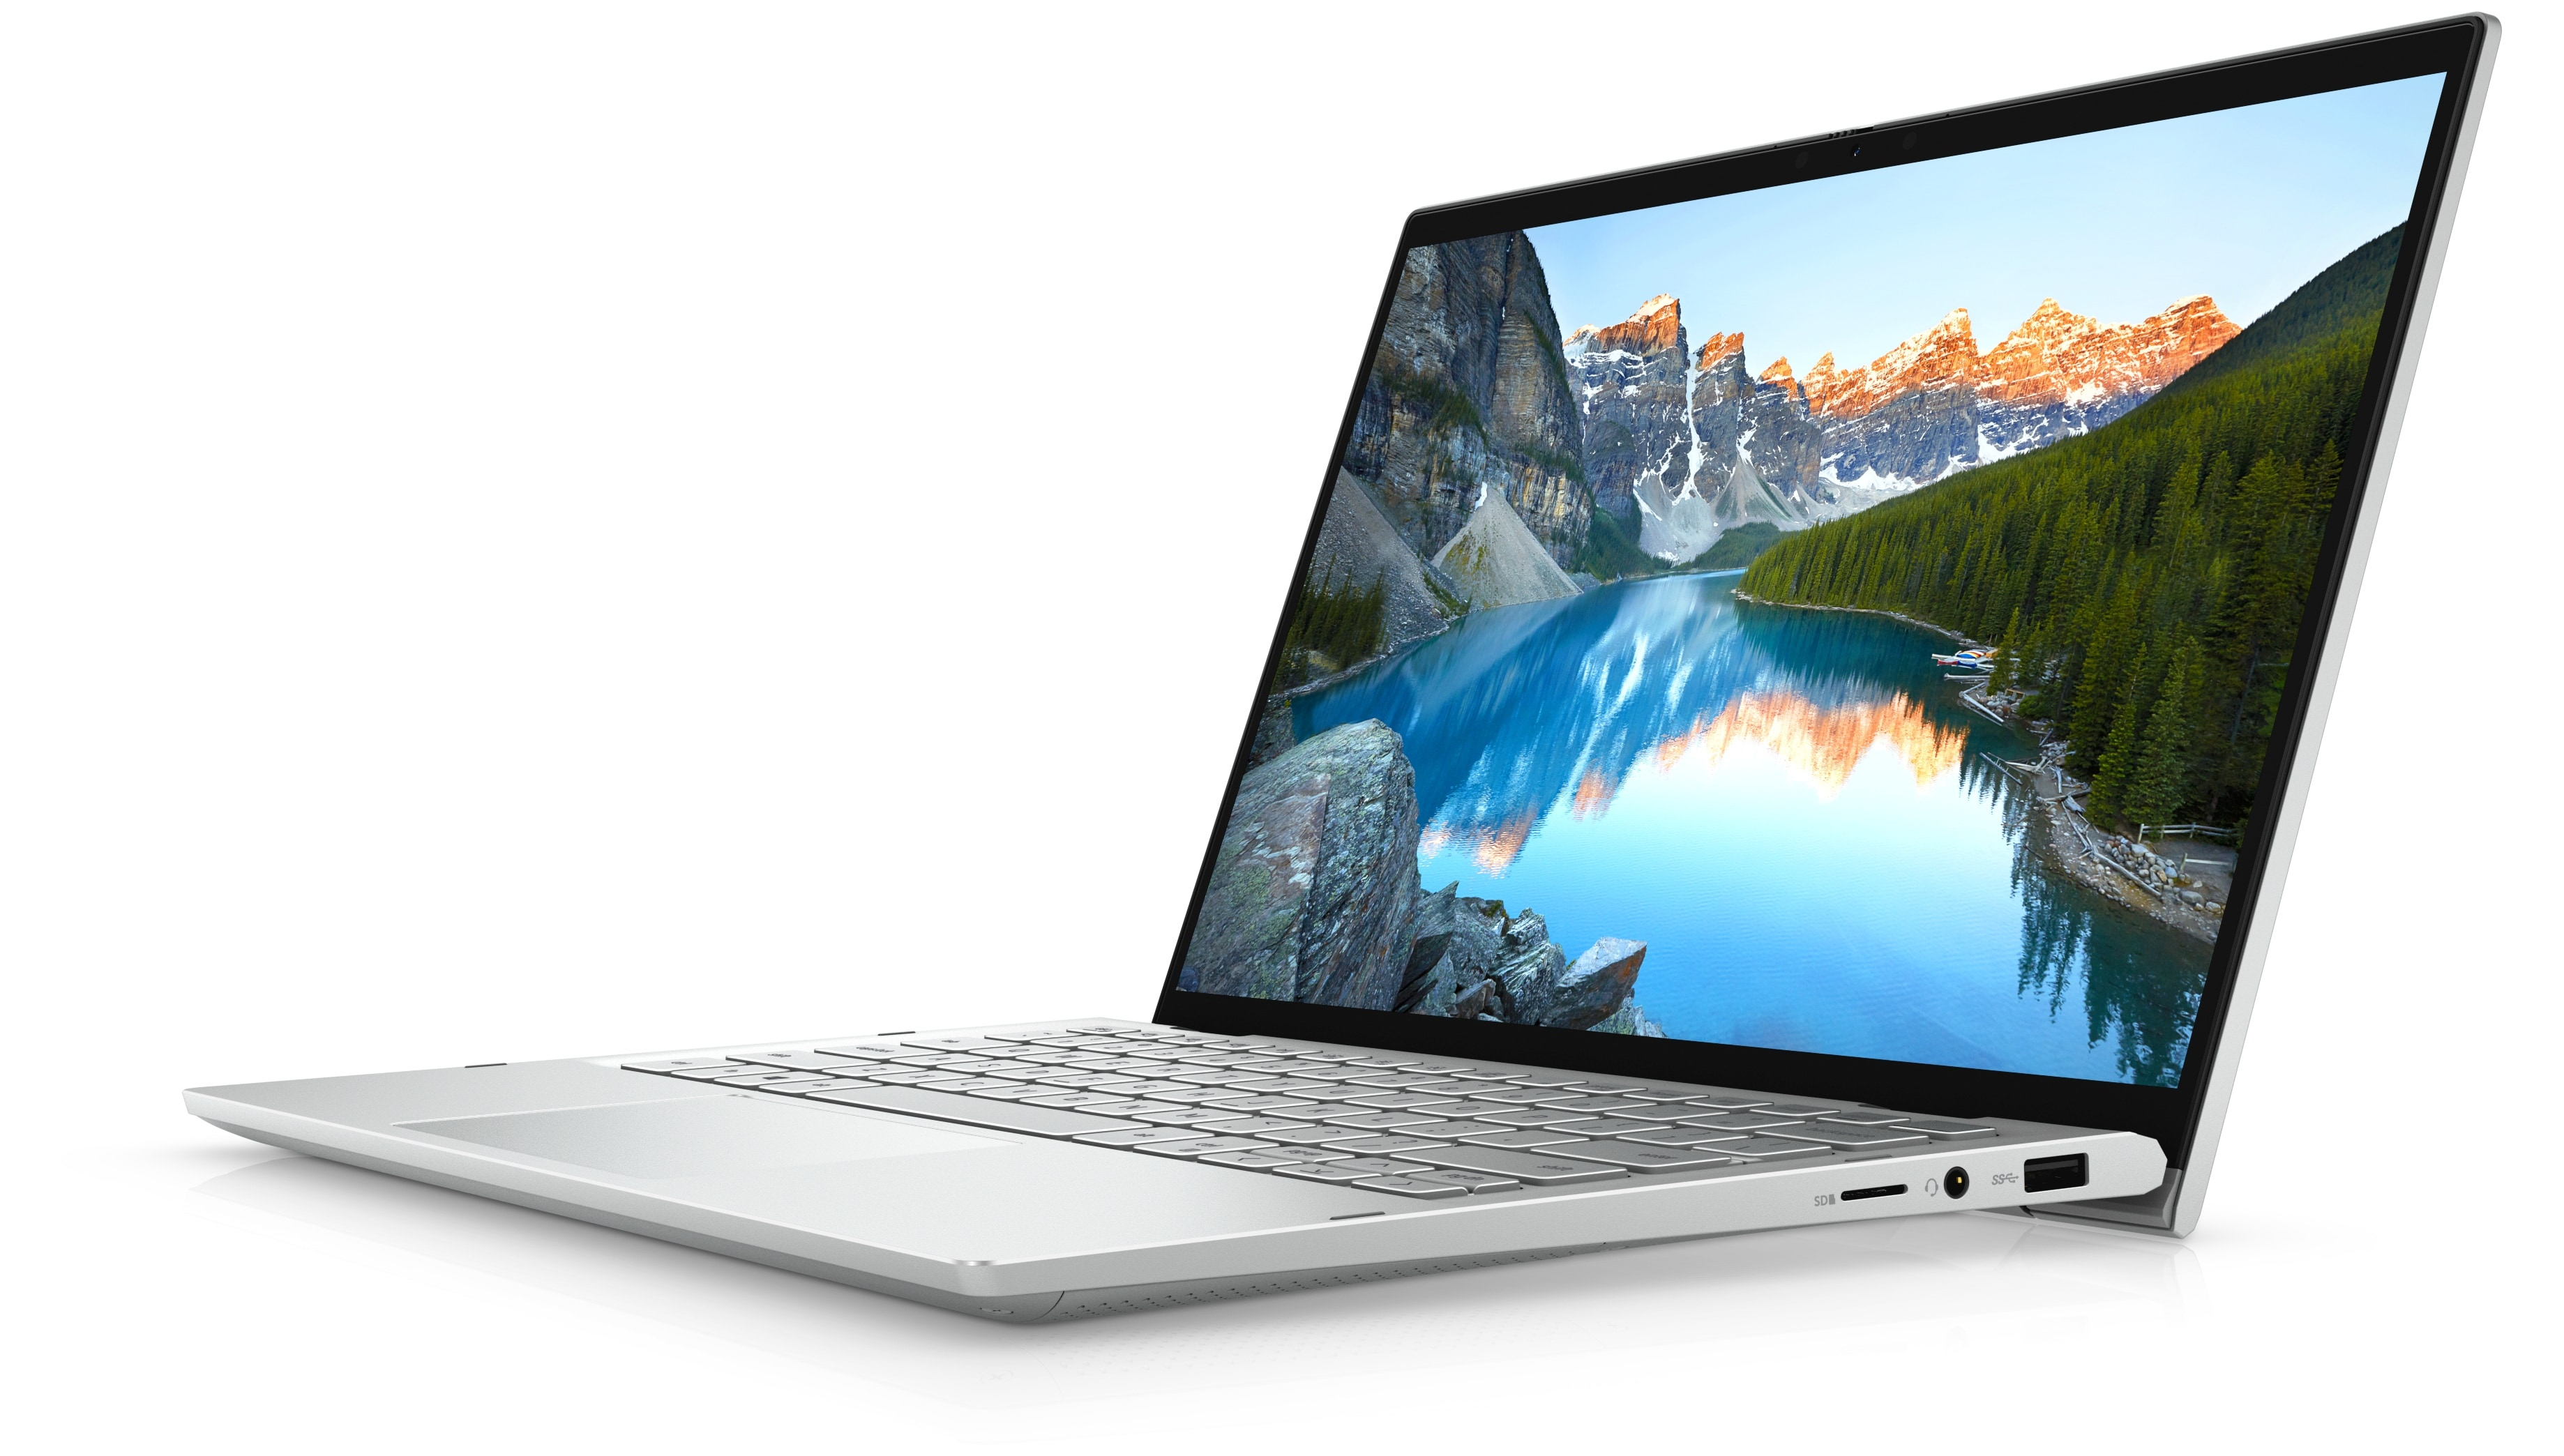 New Inspiron 15 7000 2-in-1